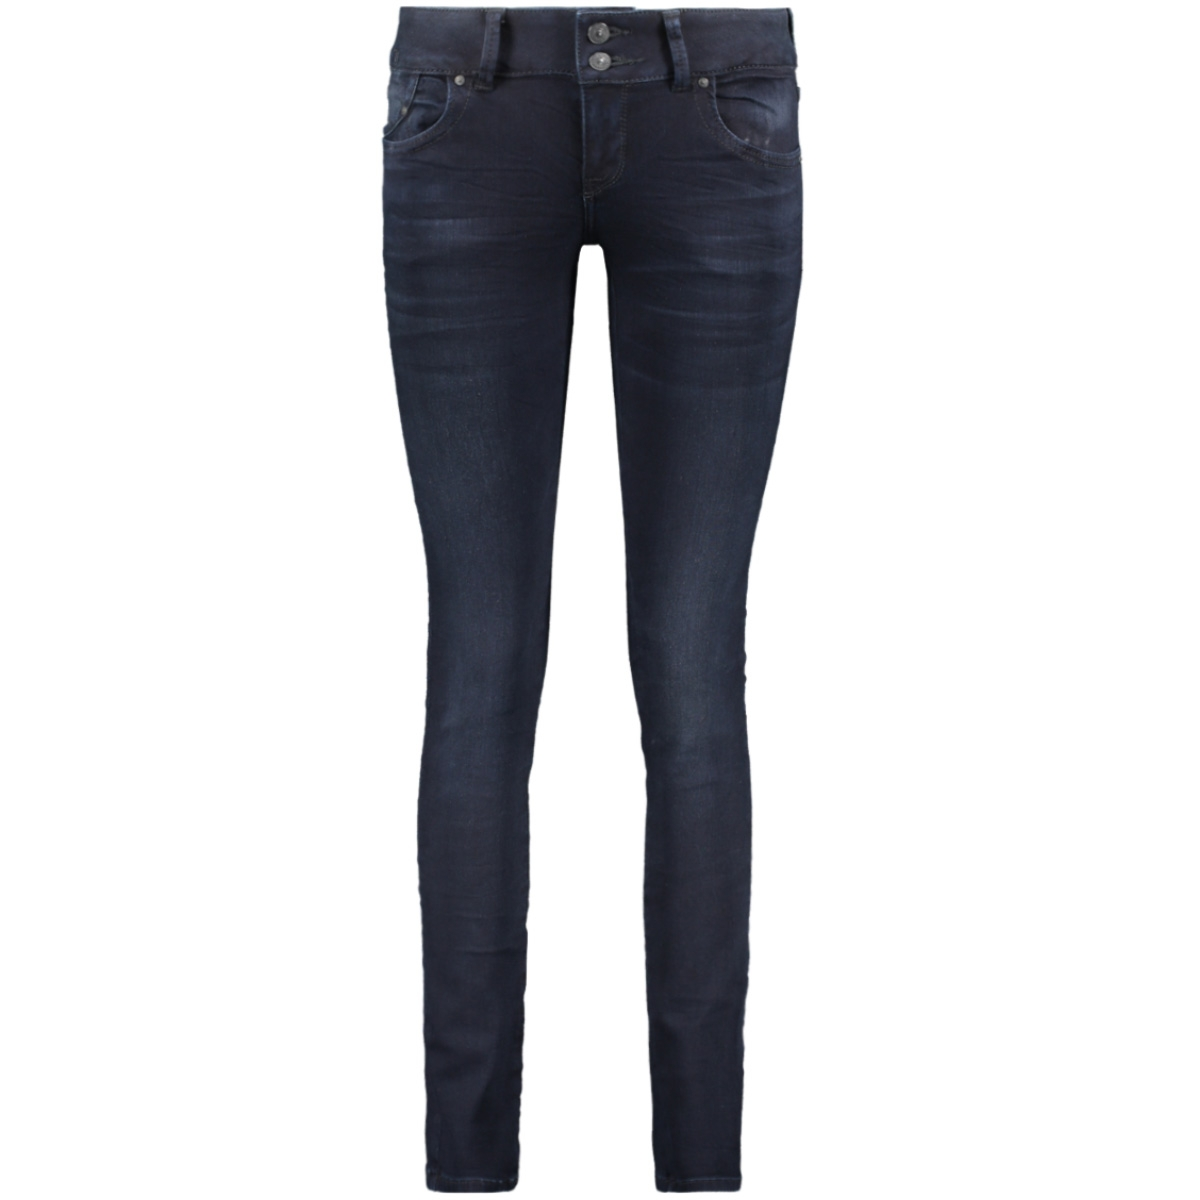 molly 1009 5065 13645 ltb jeans 51272 parvin wash